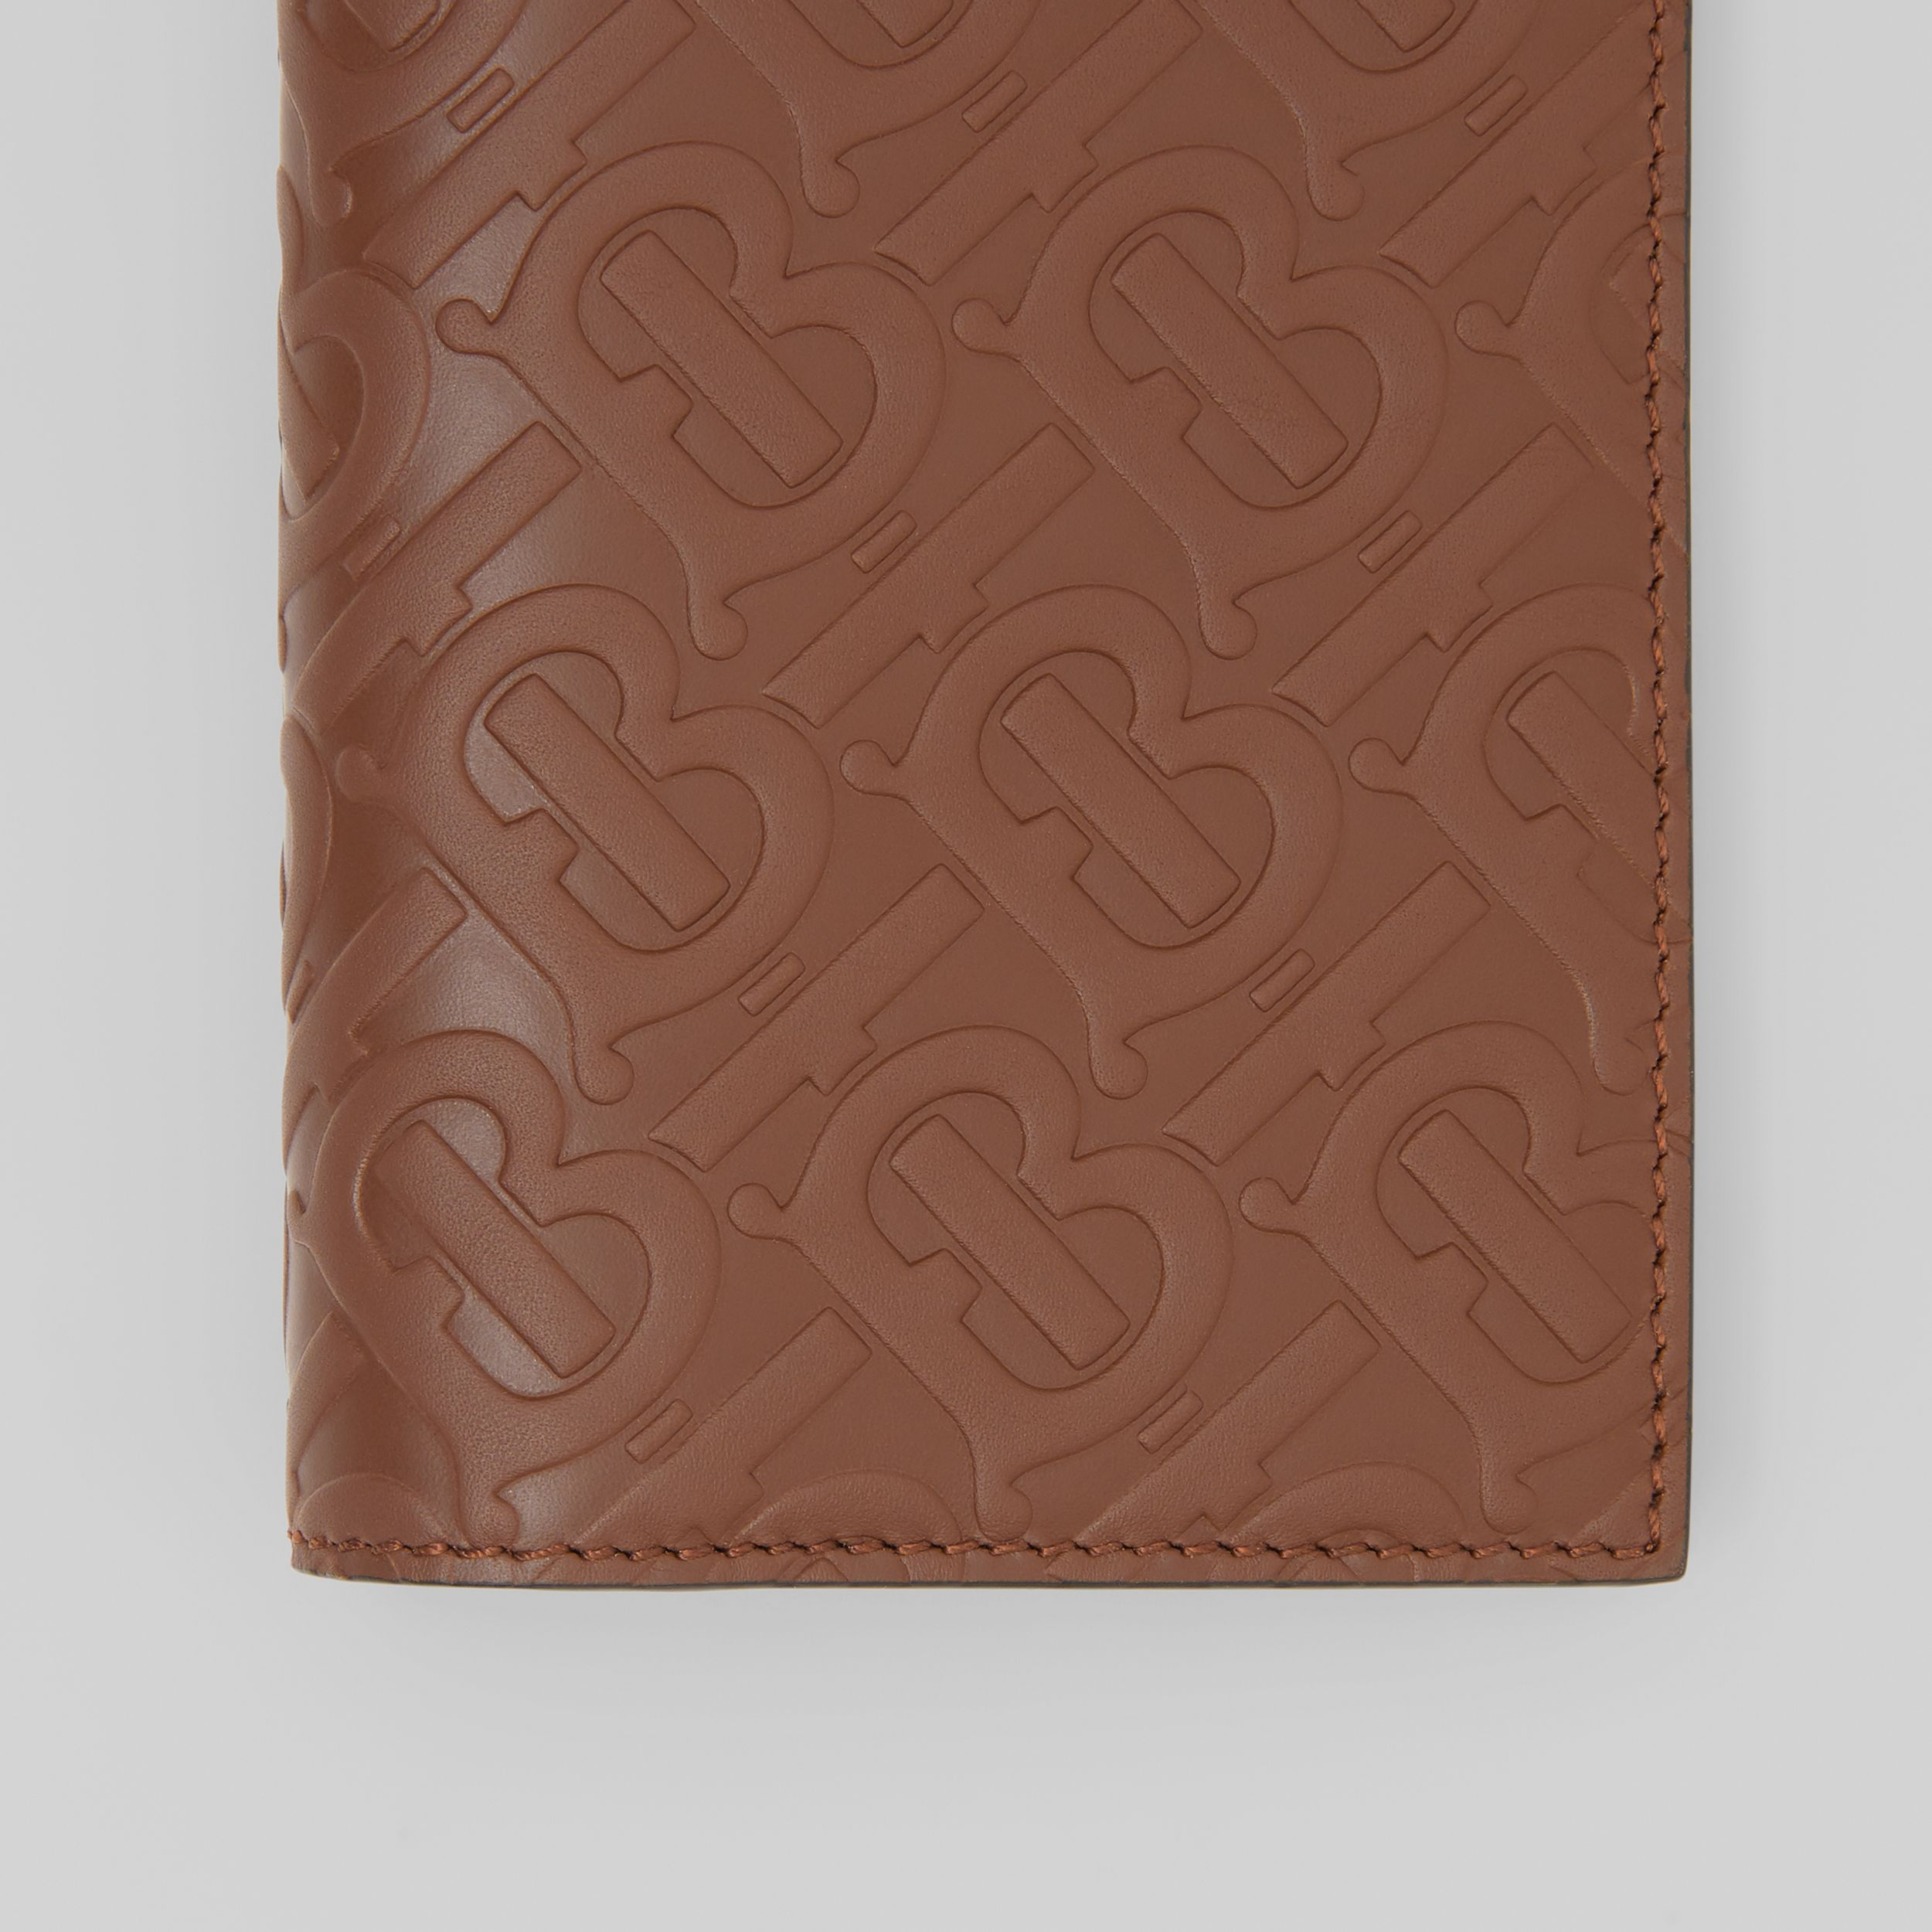 Monogram Leather Continental Wallet in Dark Tan - Men | Burberry - 2